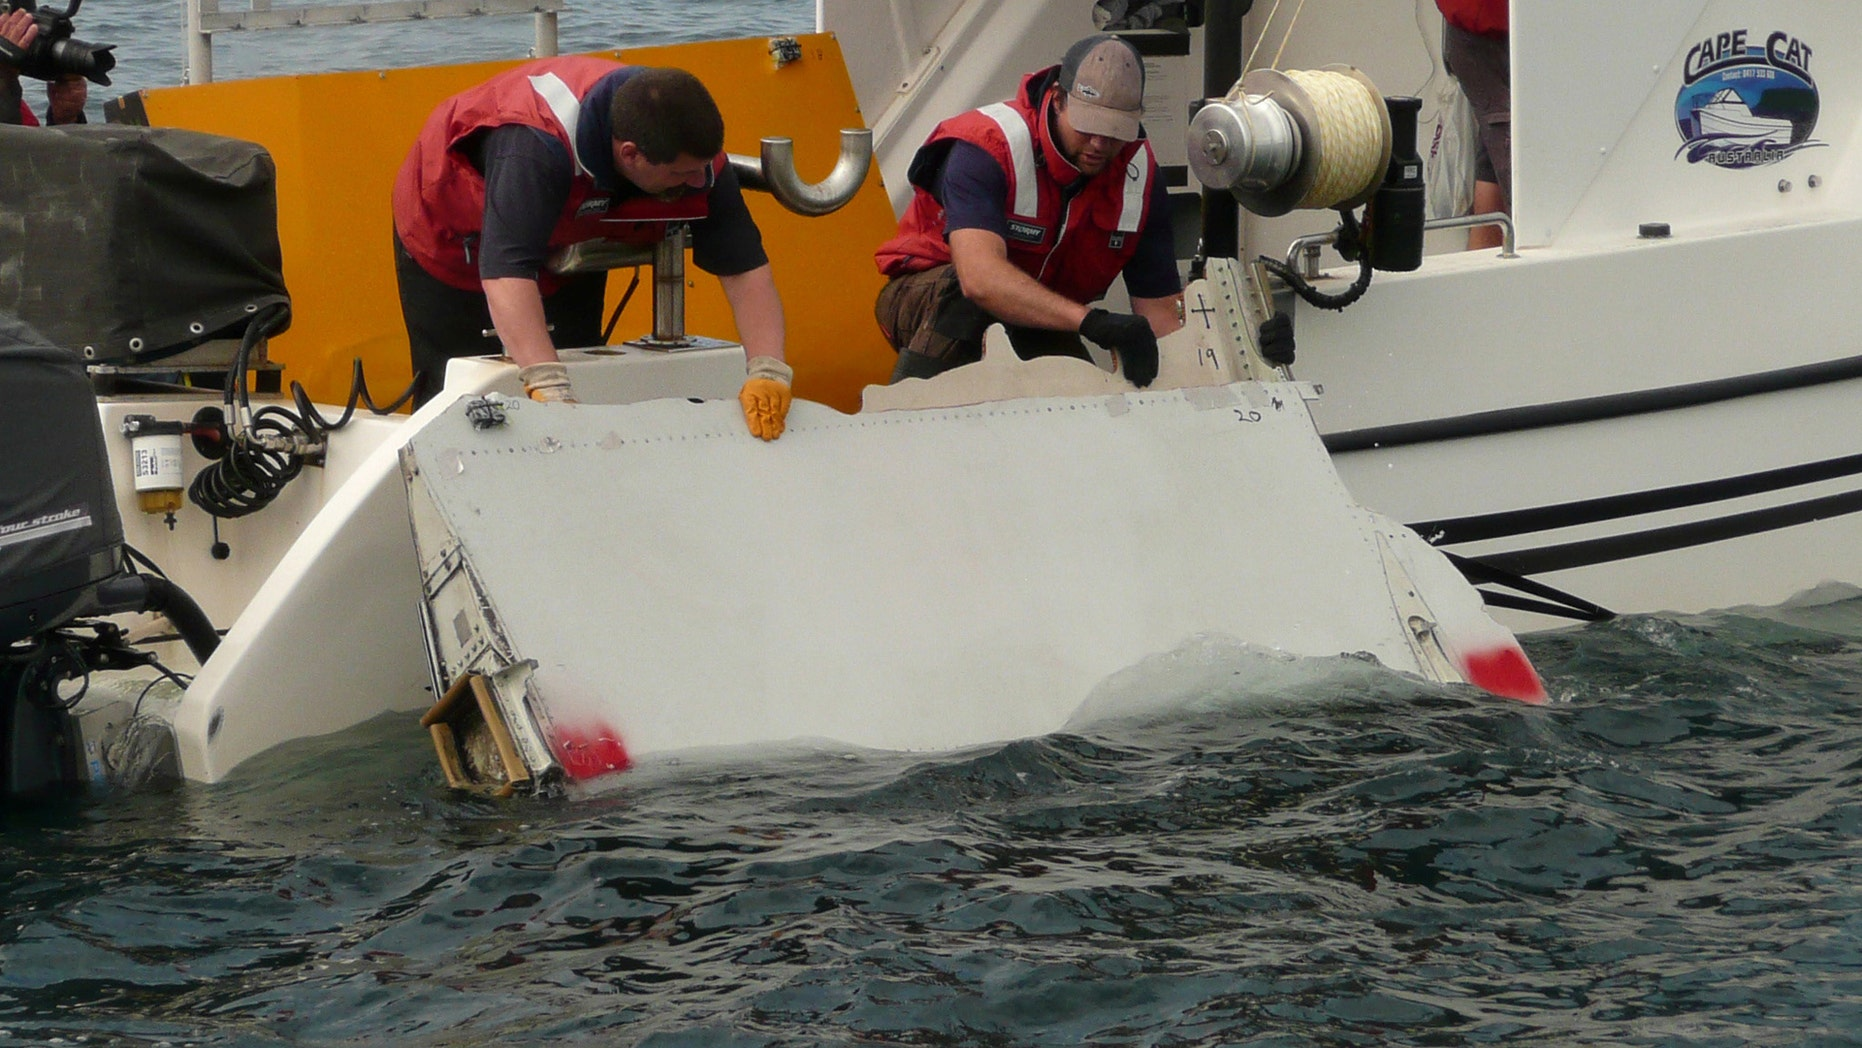 A Boeing 777 flaperon cut down to match the one from flight MH370 found on Reunion island off the coast of Africa in 2015, is lowered into water to discover its drift characteristics by Commonwealth Scientific and Industrial Research Organisation researchers in Tasmania, Australia, in this handout image taken March 23, 2017.